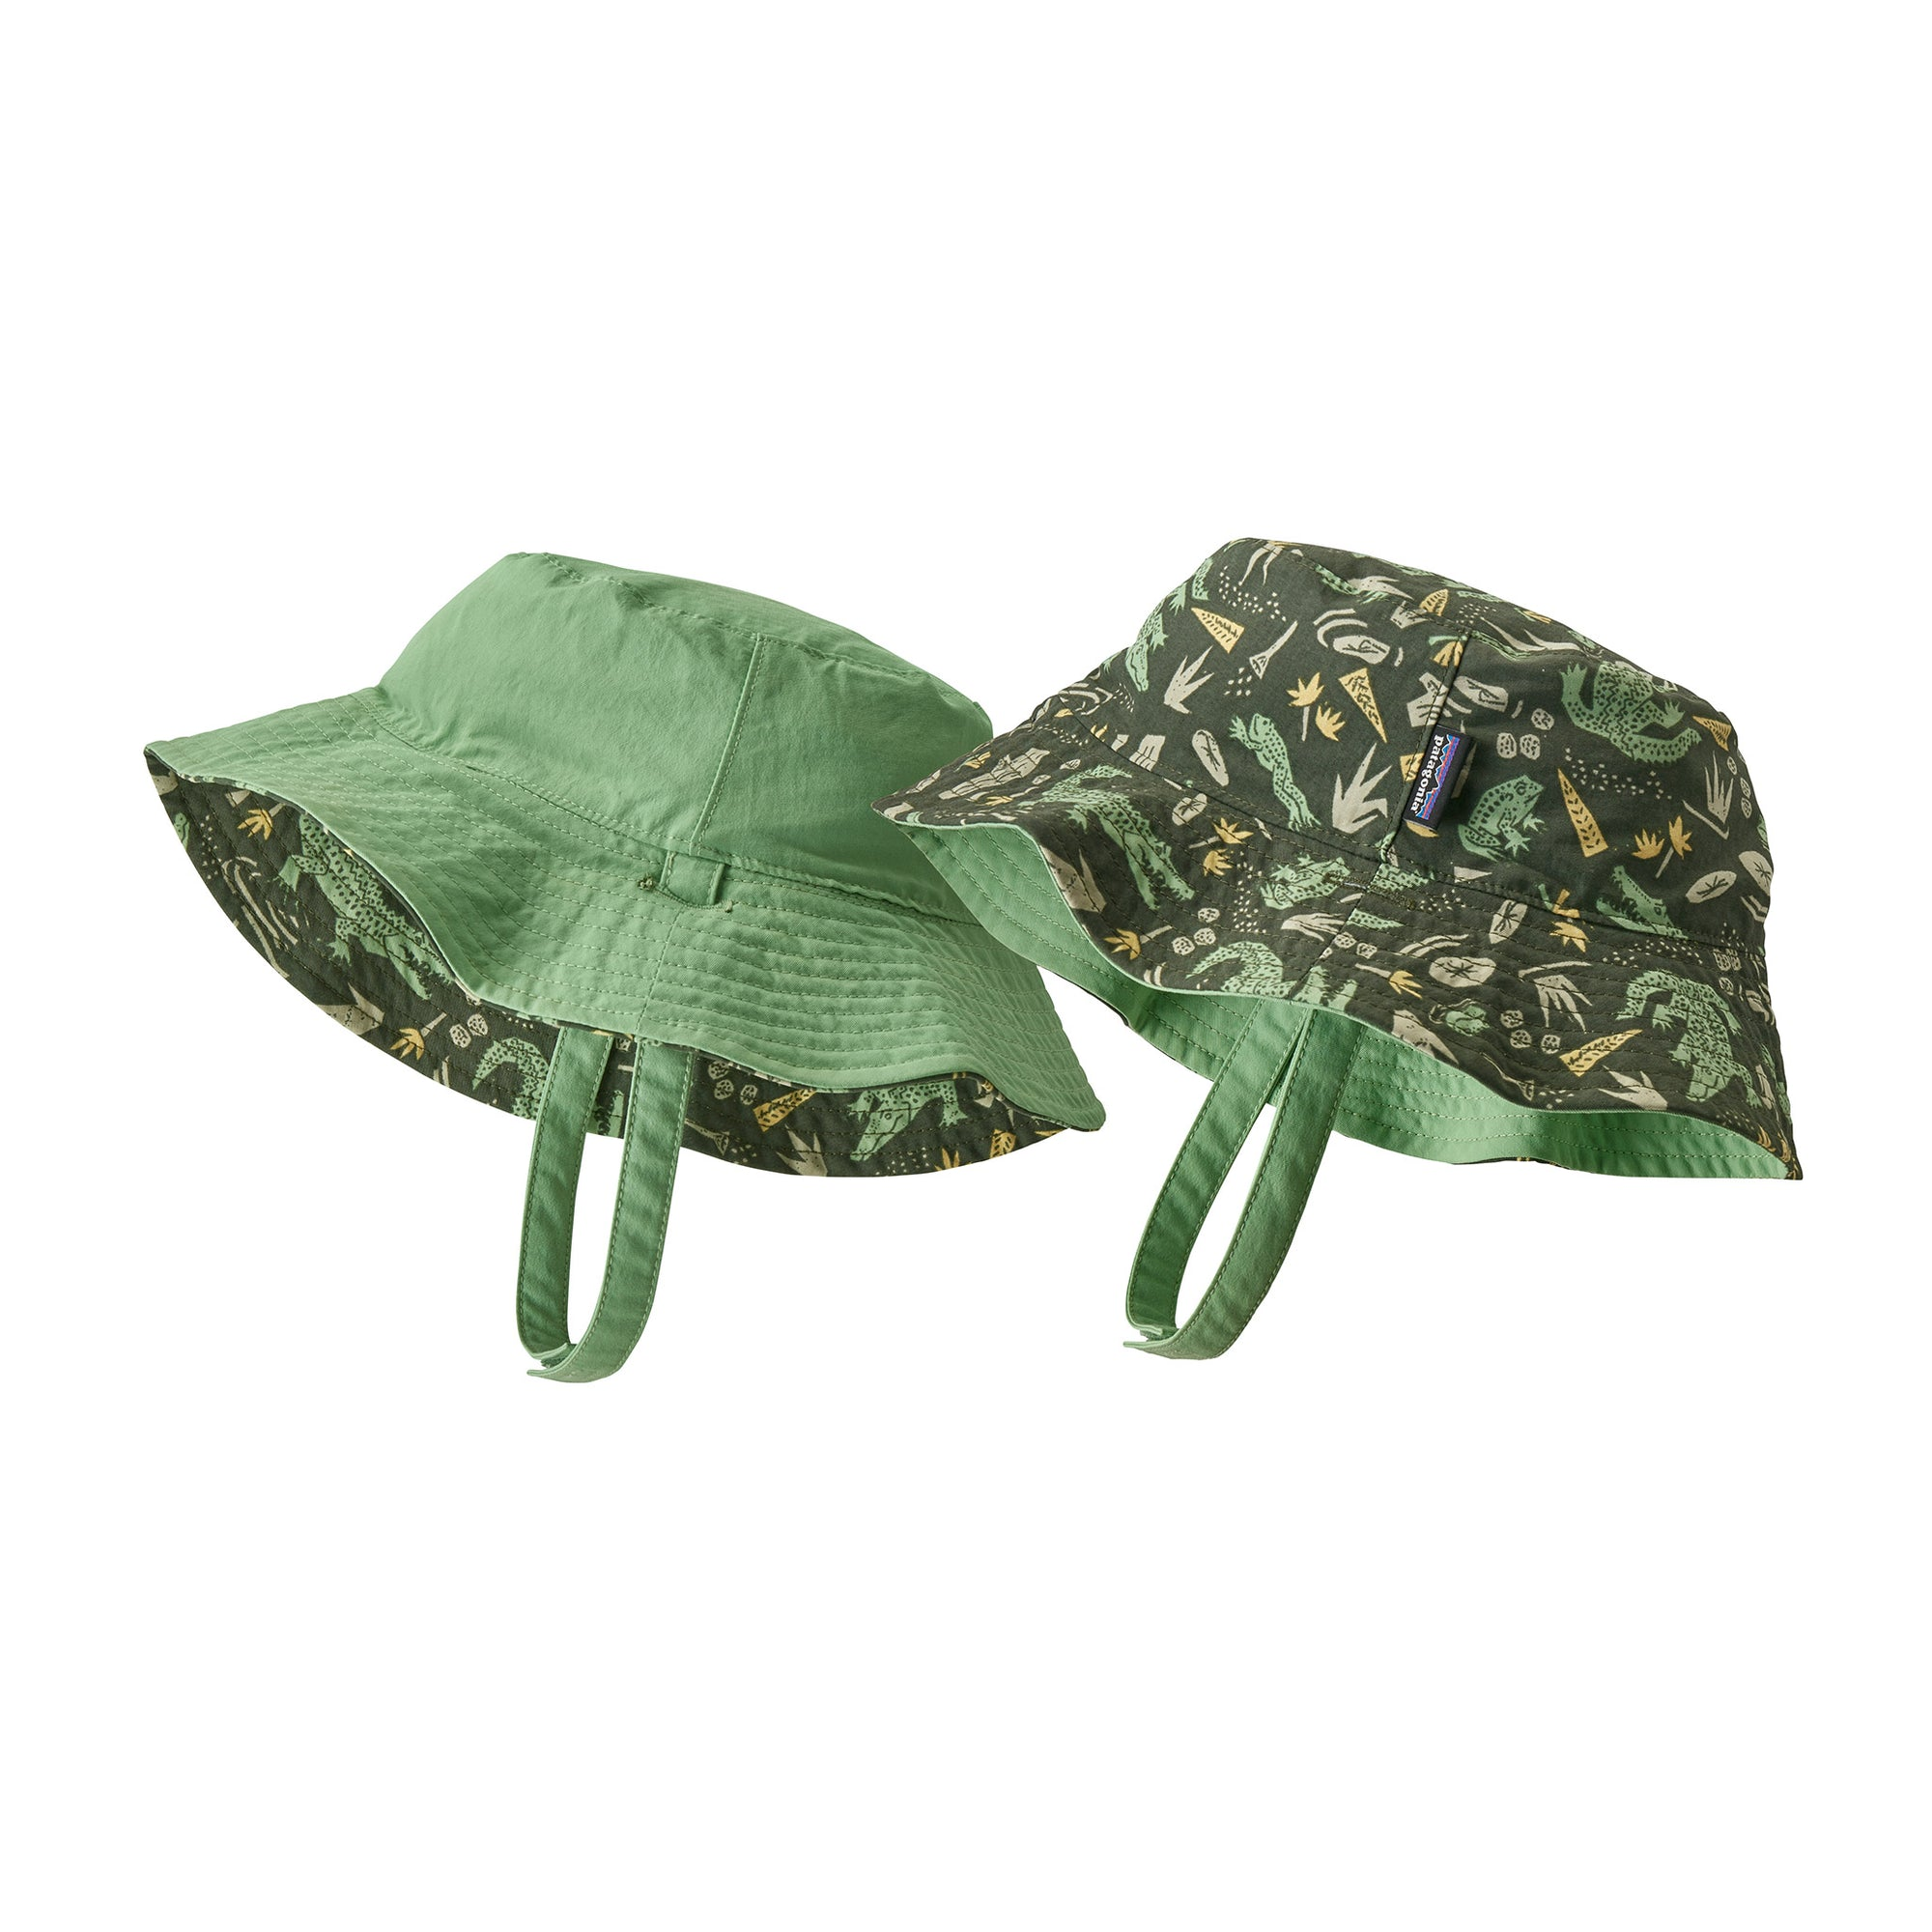 the alligators and bullfrogs version of the kids baby sun bucket hat